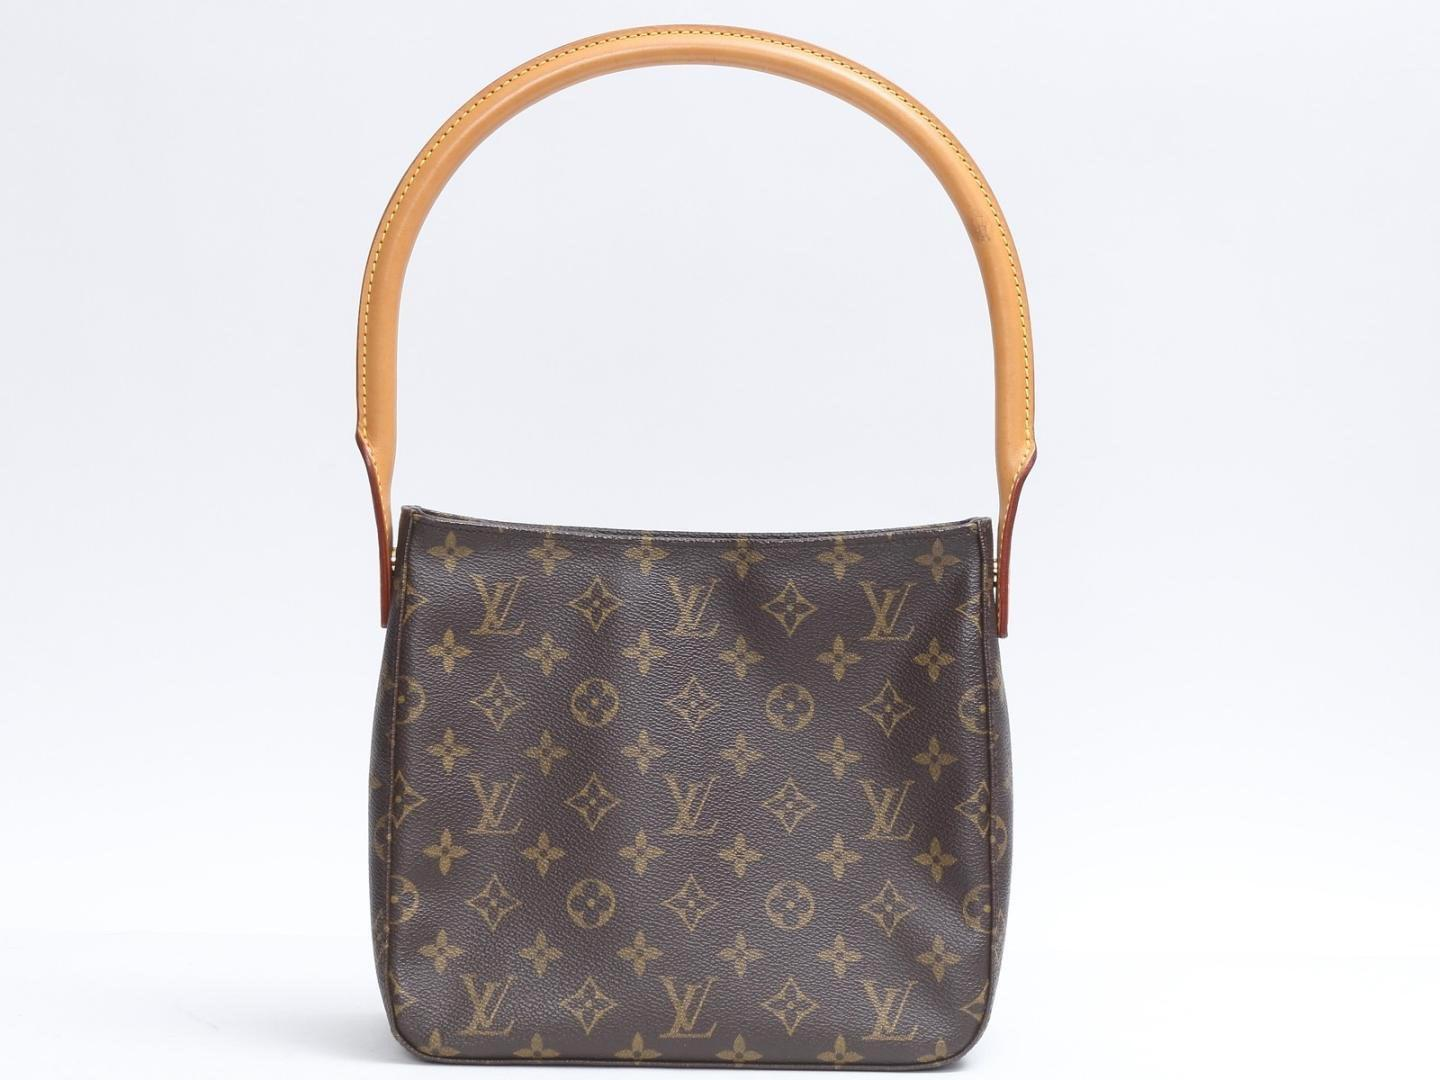 b8e0f926be13 Louis Vuitton. Women s Brown Auth Used Looping Shoulder Hand Bag M51145 Monogram  Canvas